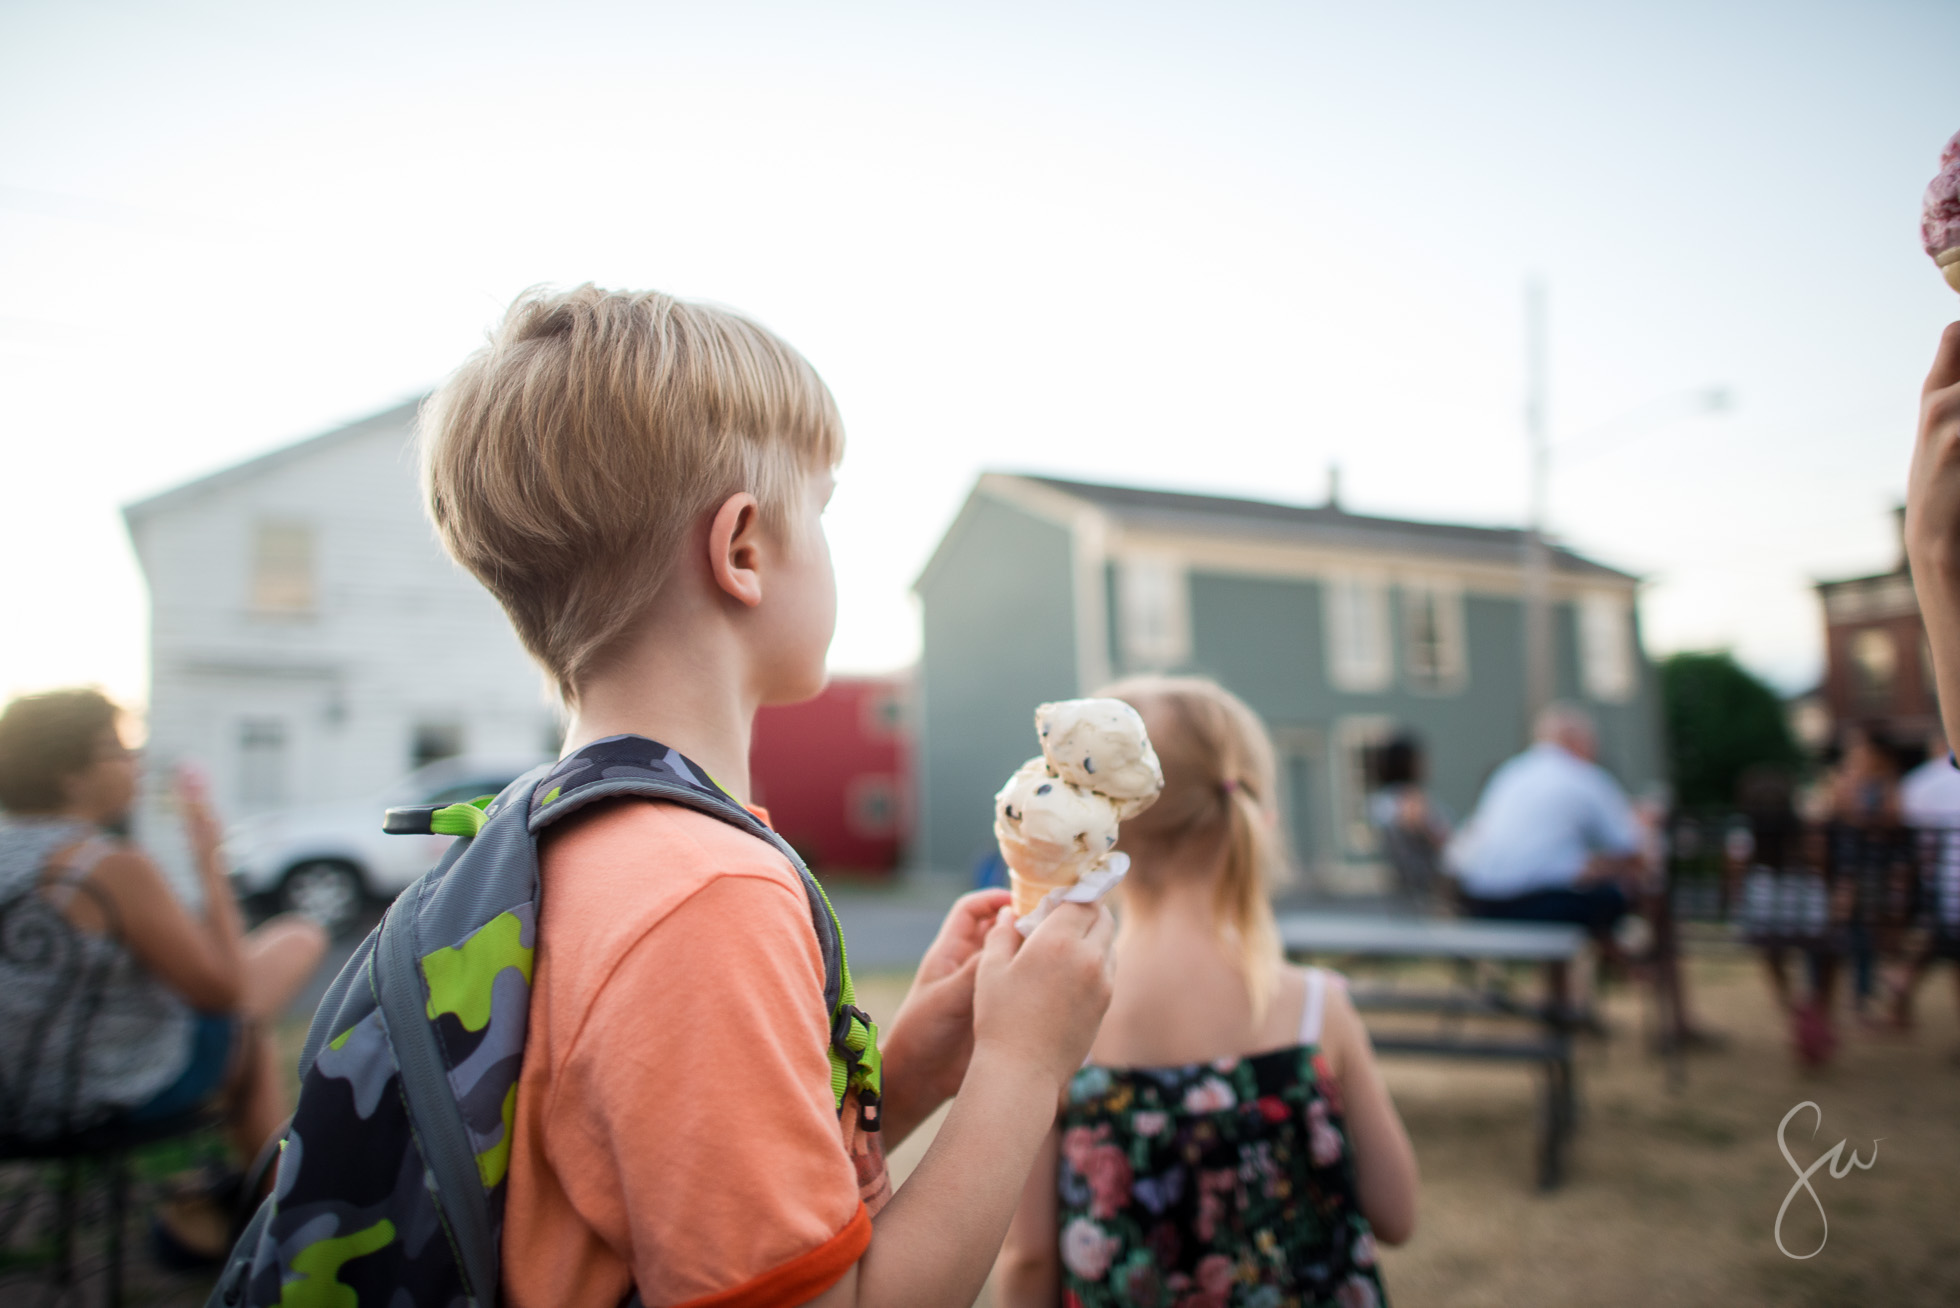 Everyday-Documentary-Photo-of-Evening-Ice-Cream-Outing-in-Sackets-Harbor-Northern-New-York-by-Sarah-Wilkerson-8412